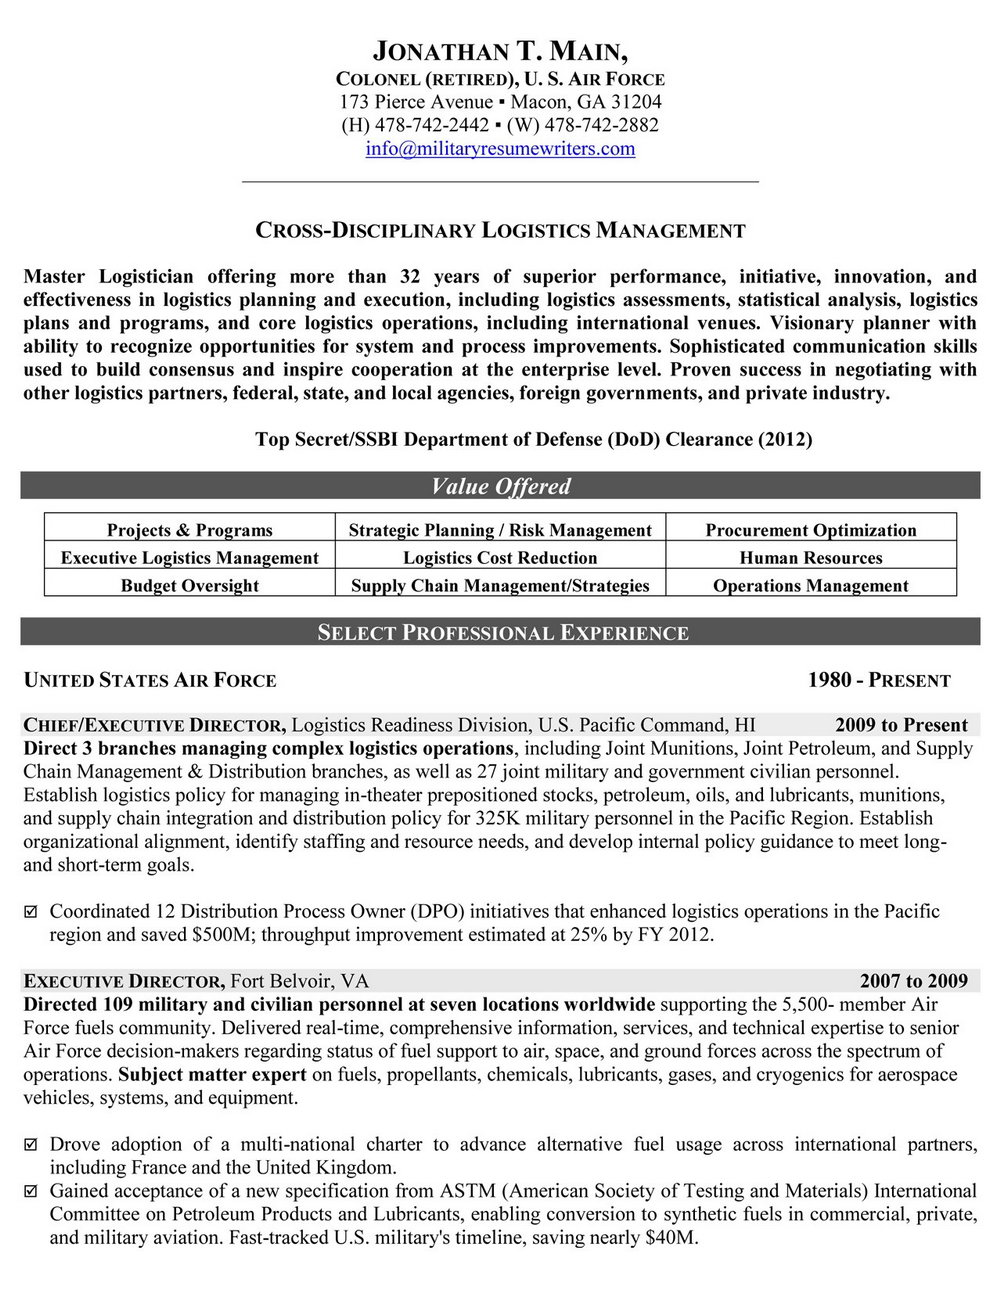 Resume Builder For Veterans